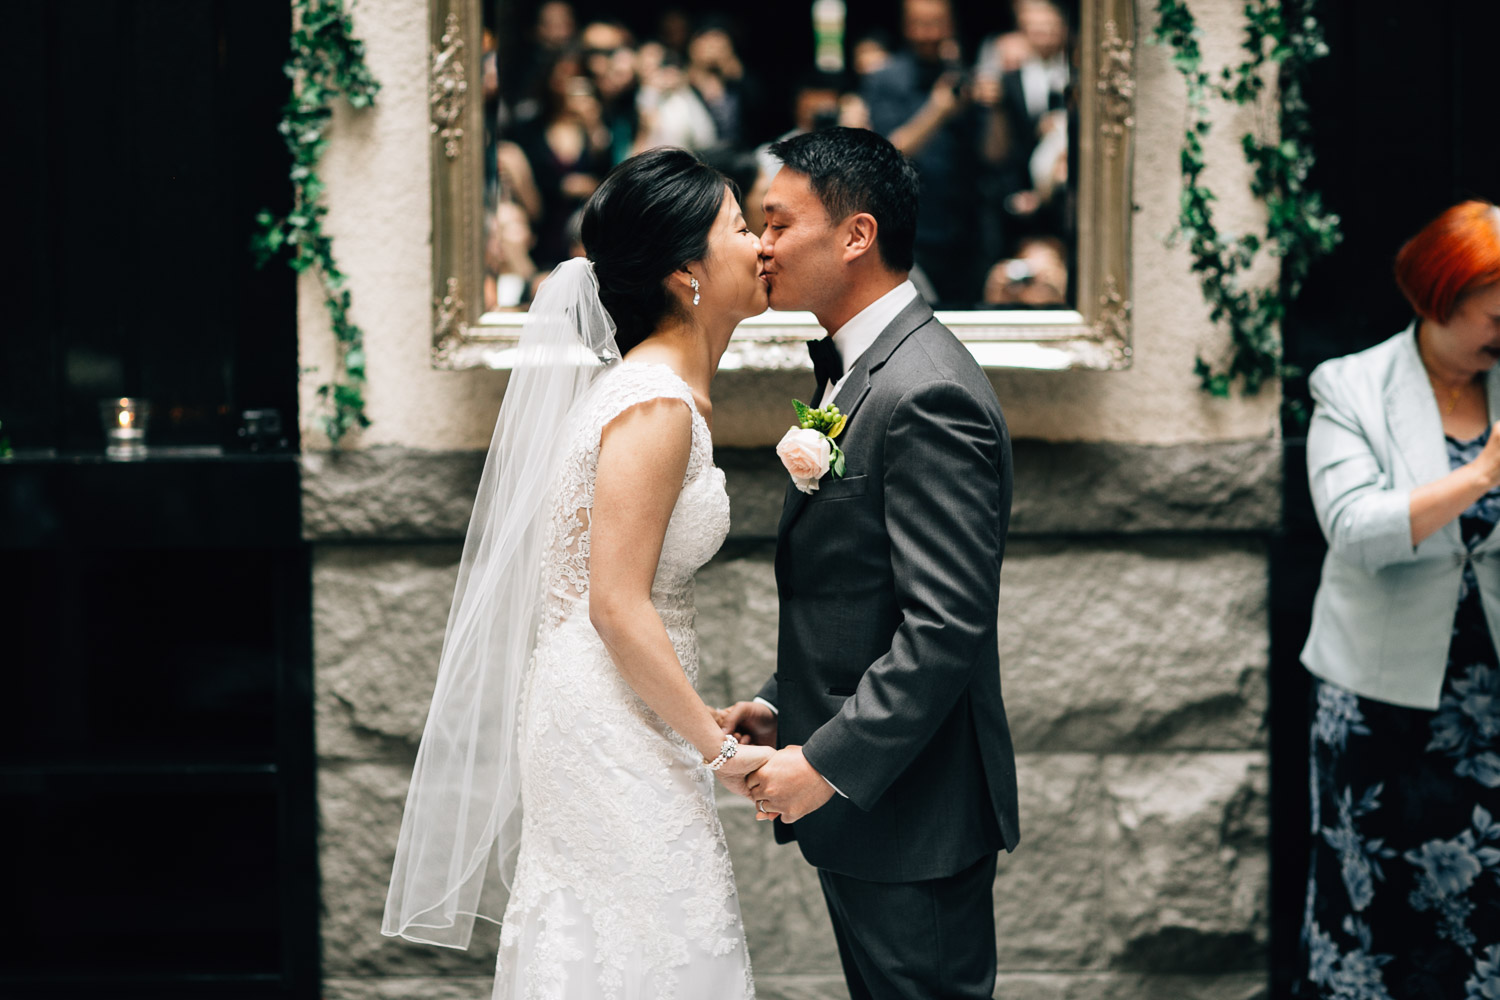 brix and mortar wedding ceremony first kiss in yaletown vancouver bc photography